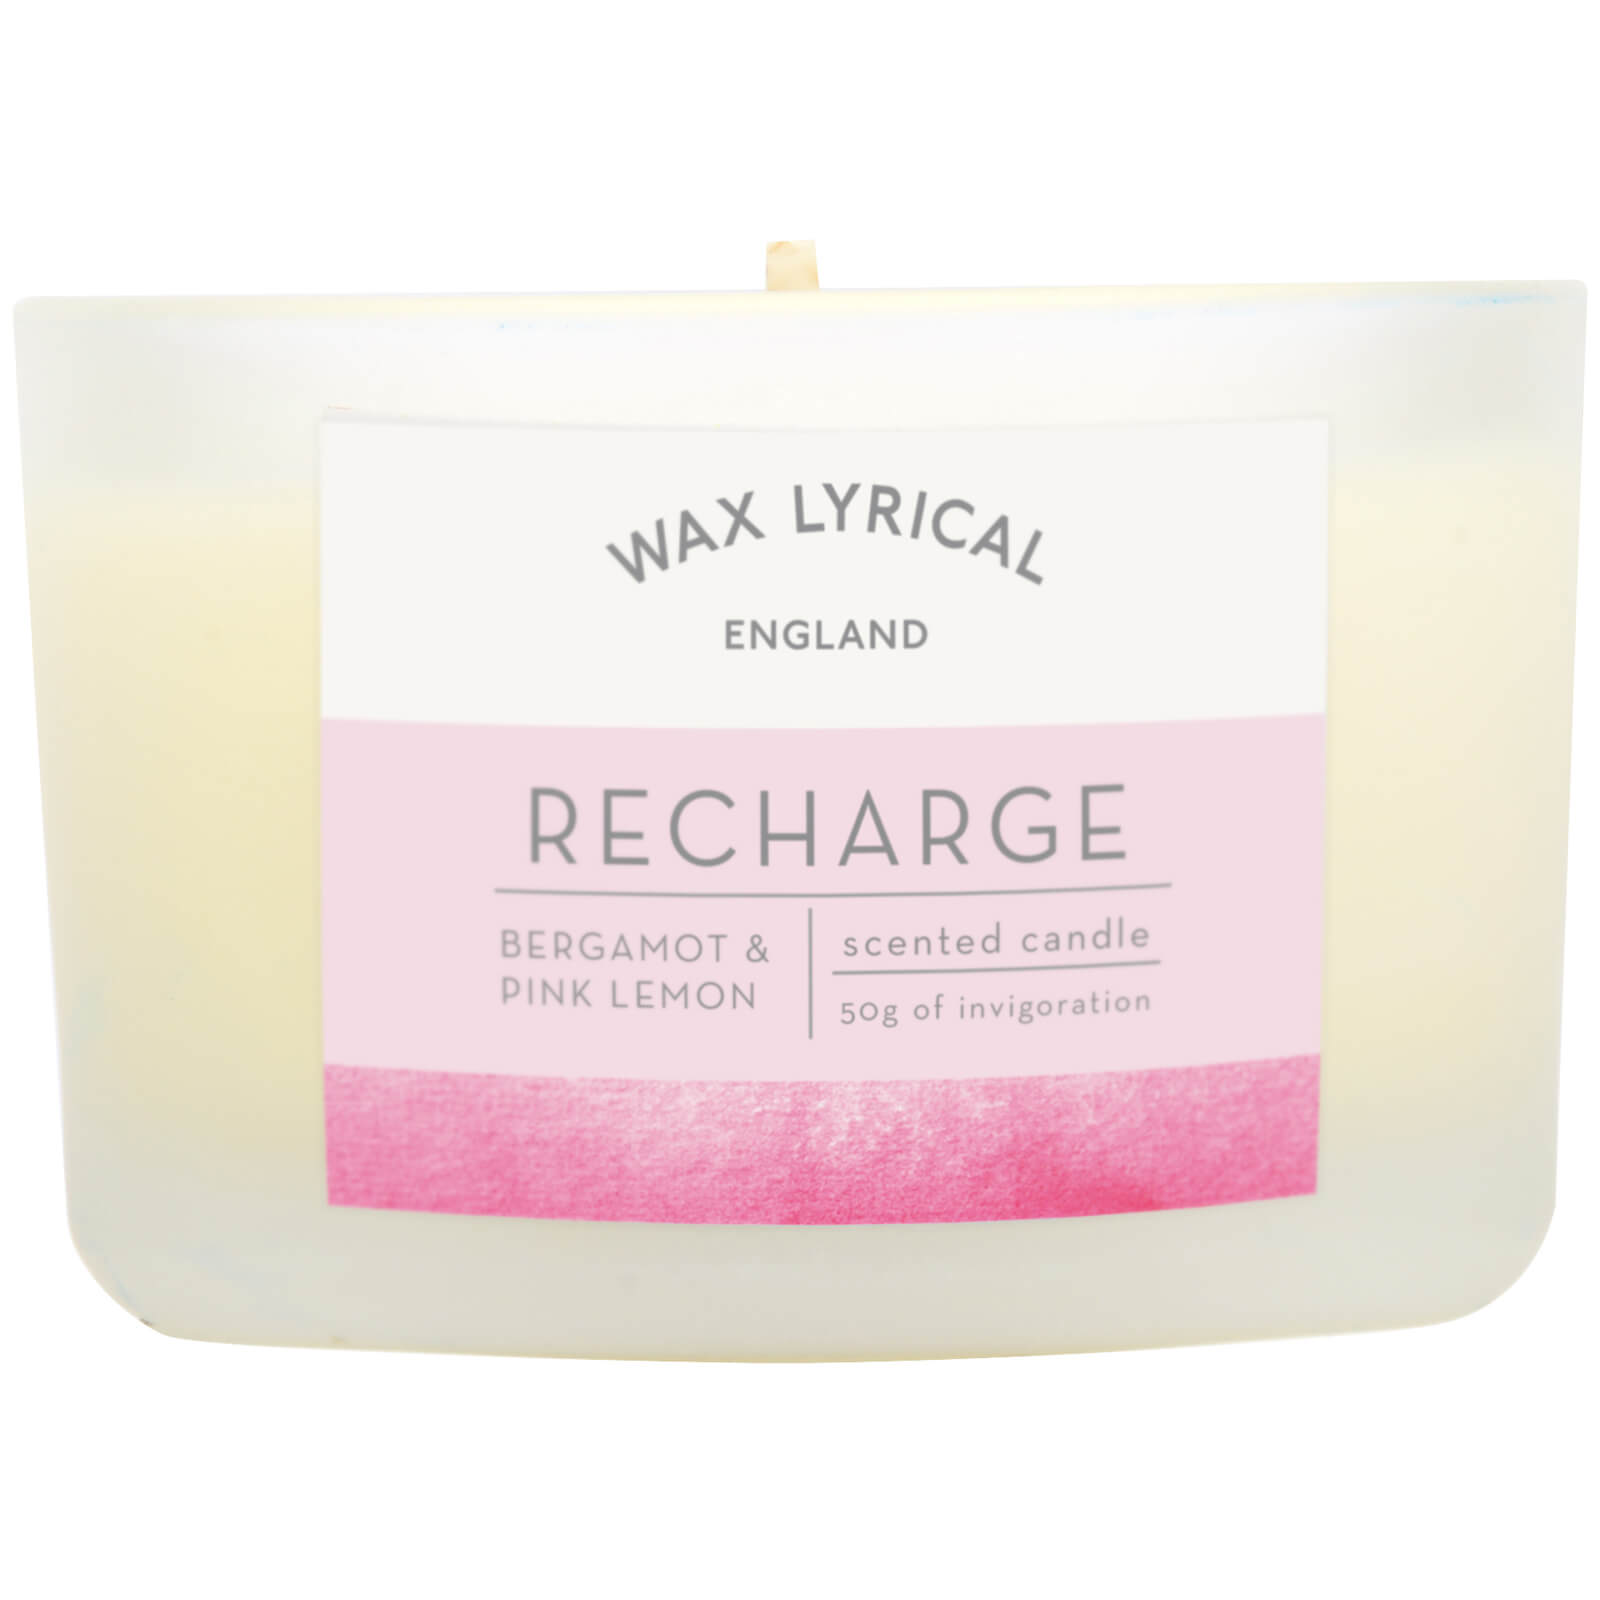 Wax Lyrical Equilibrium Recharge Travel Candle